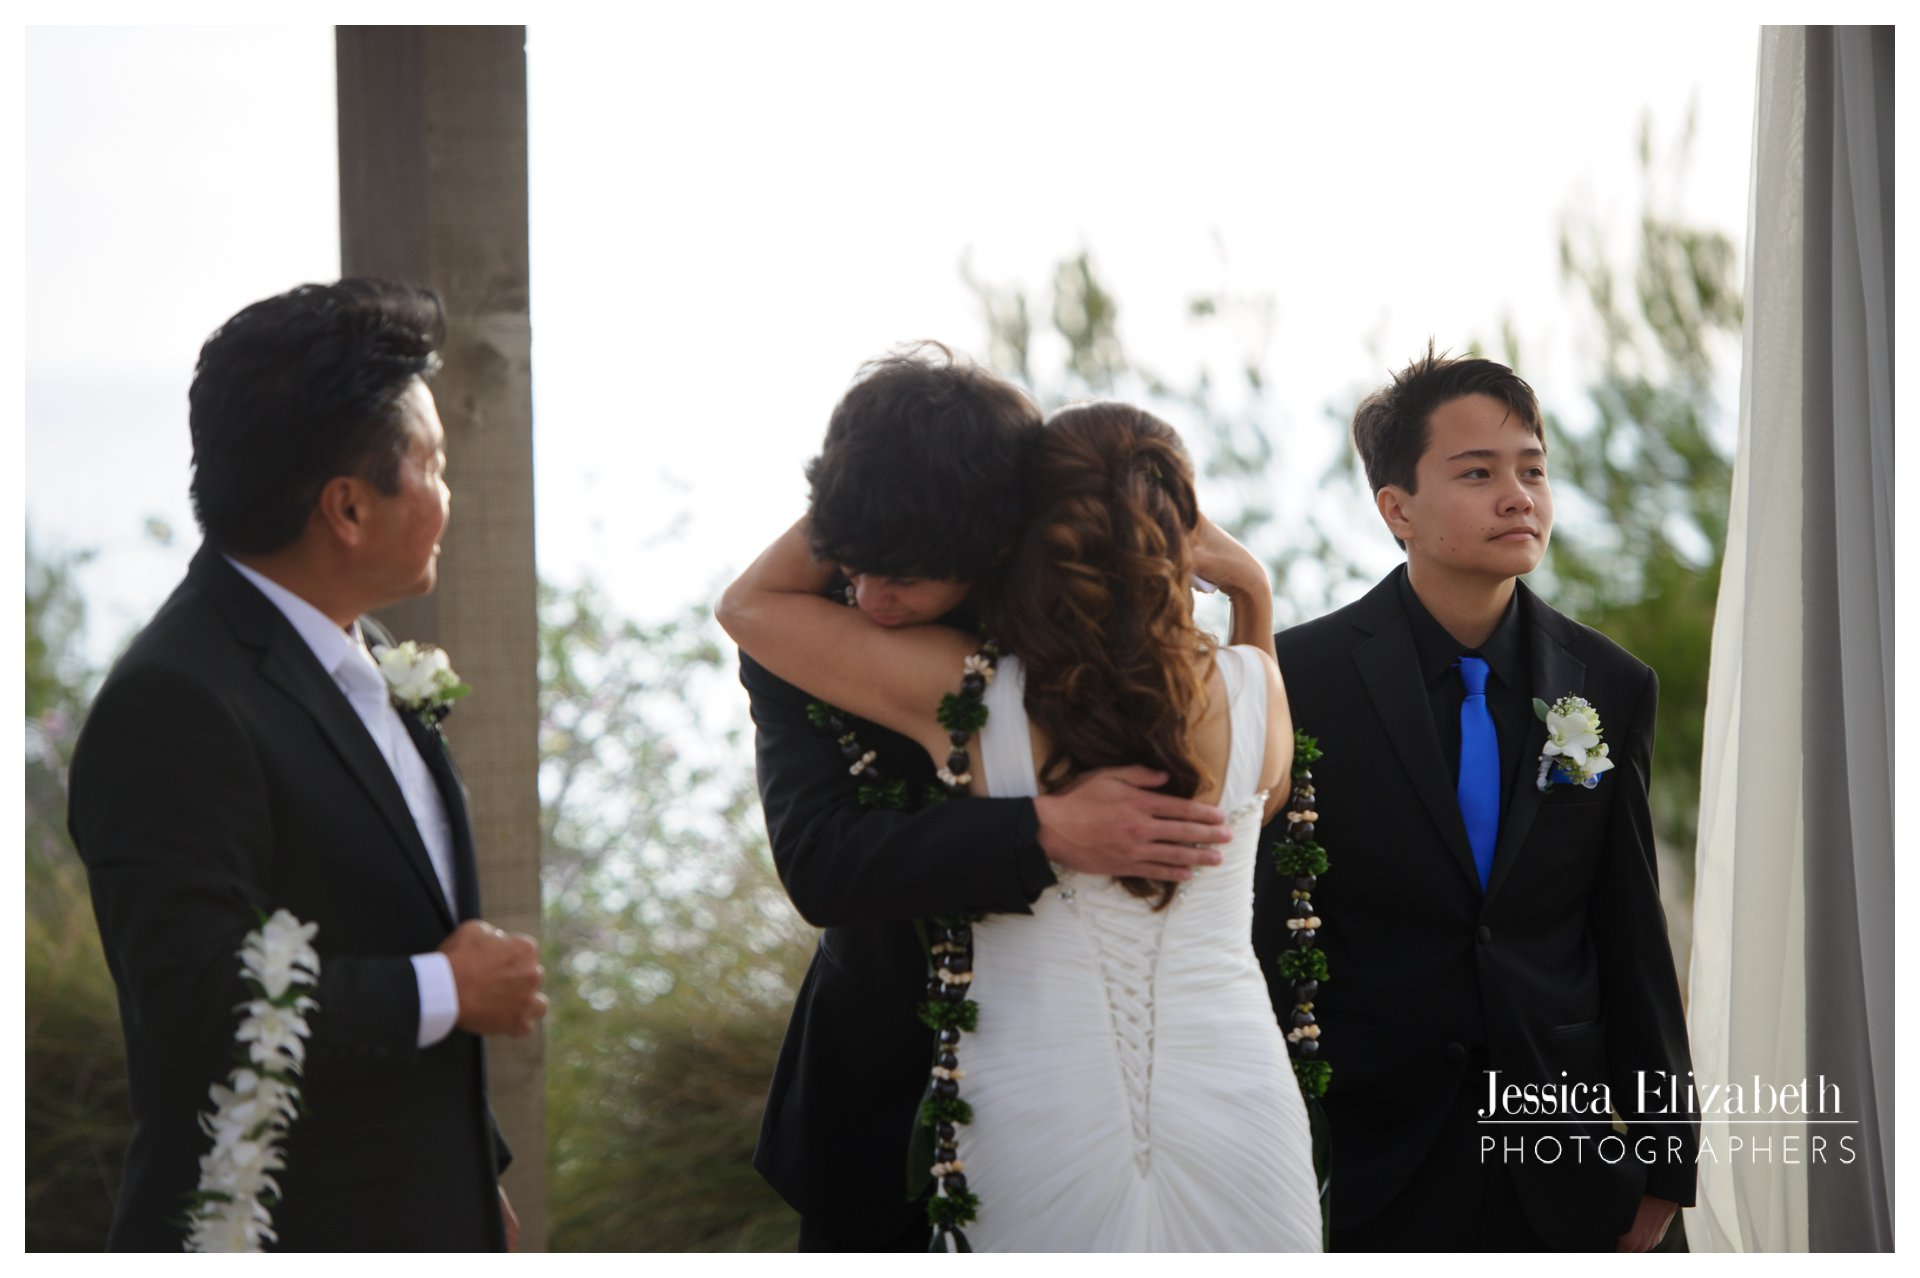 23-Terranea-Palos-Verdes-Wedding-Photography-by-Jessica-Elizabeth-w.jpg